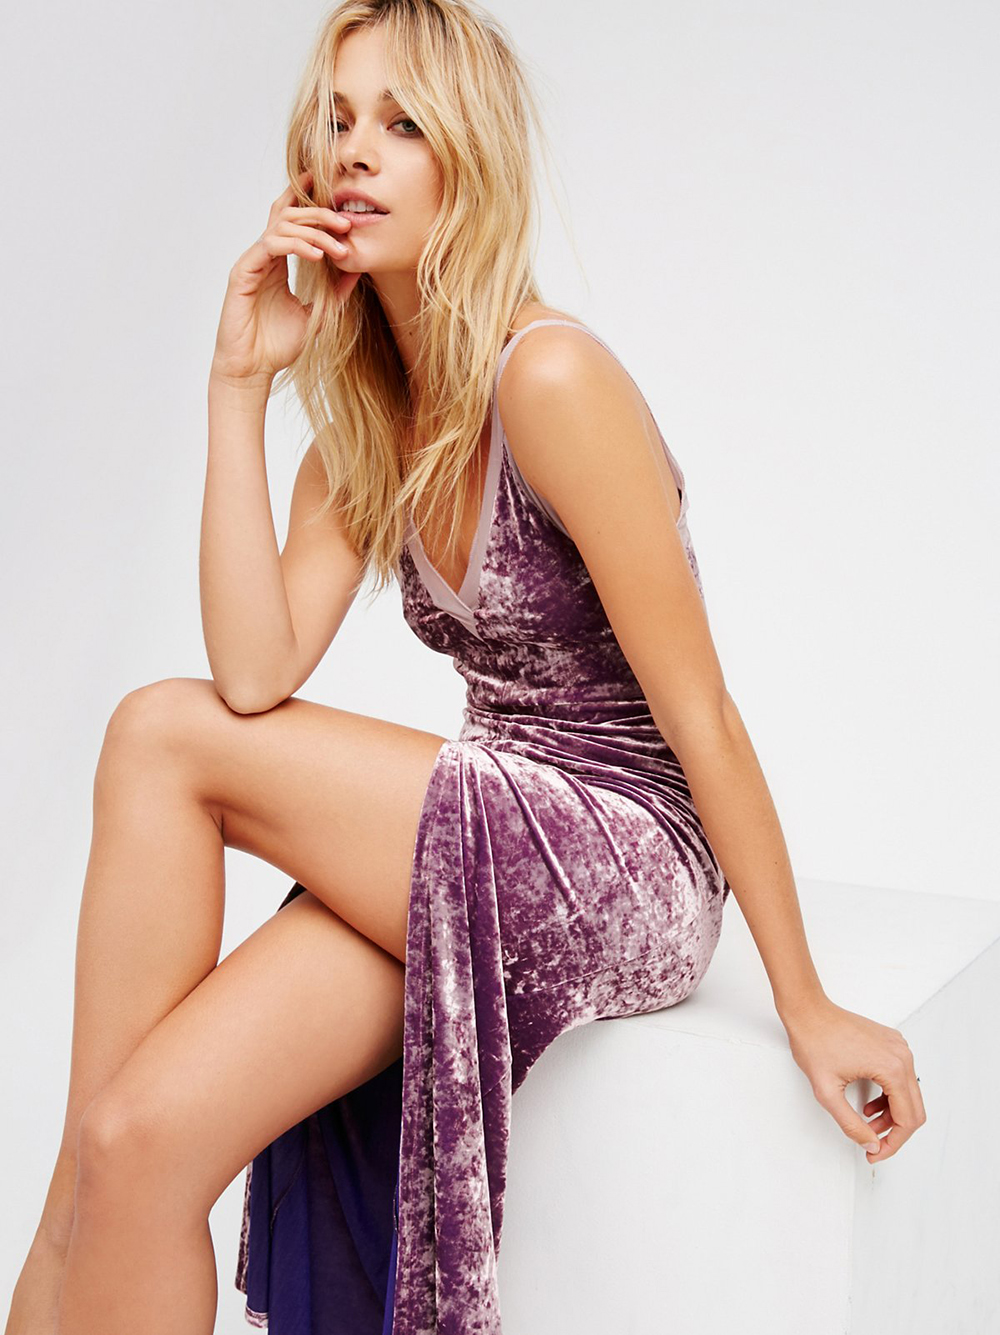 Free People Belle Epoch Velvet Maxi Slip - Unwrap These 10 Holiday Dresses